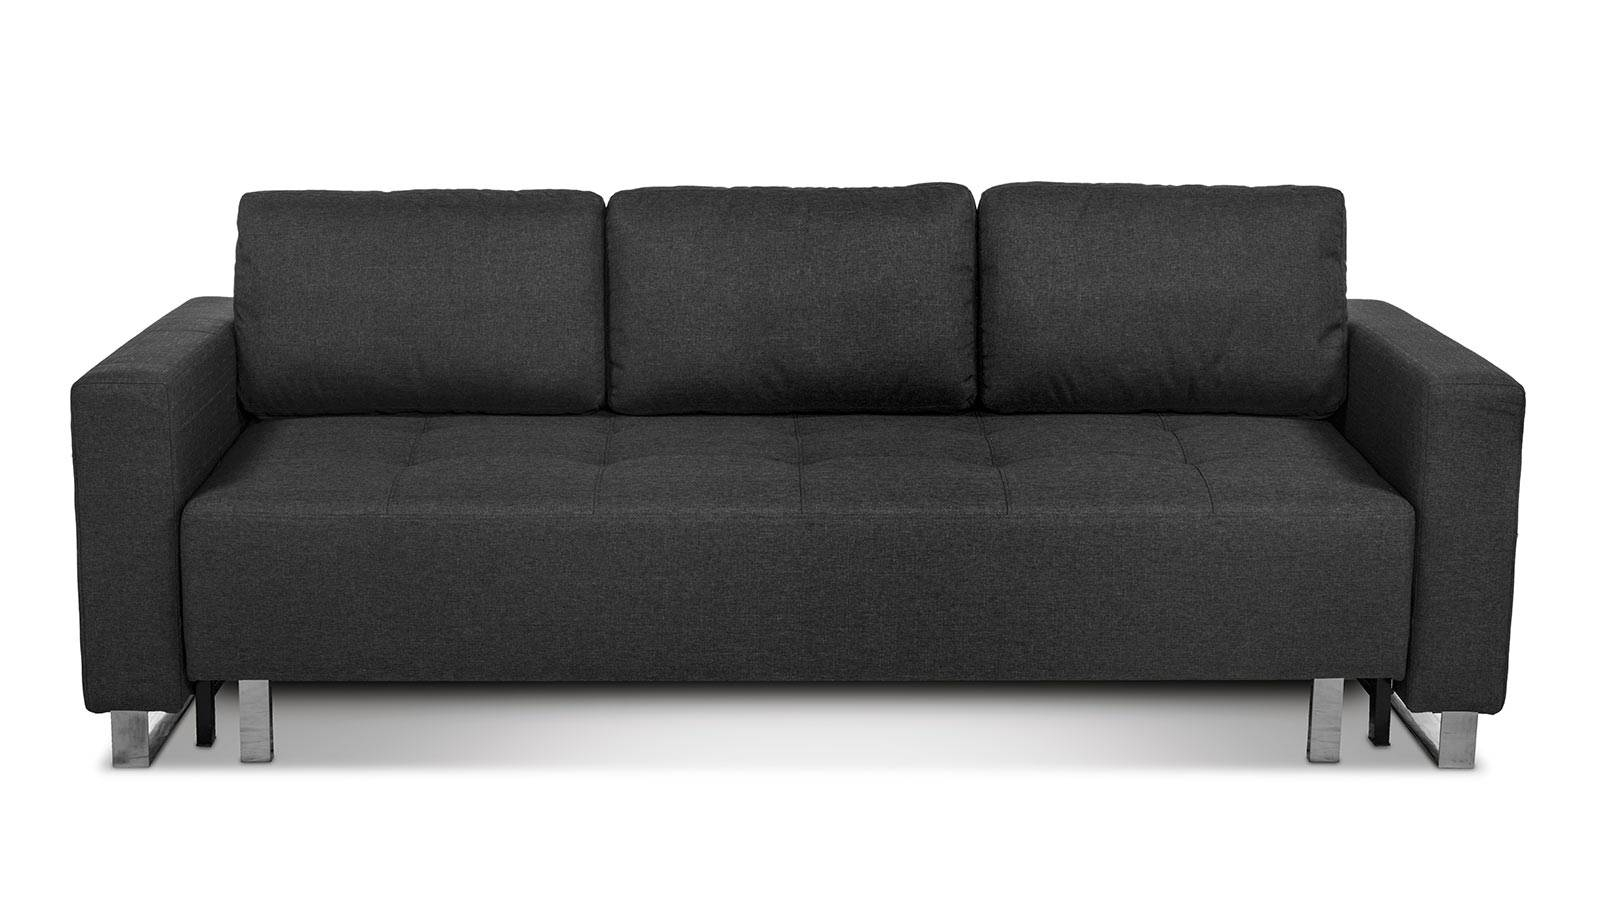 Epic Castro Convertible Sofa Bed 79 For Your Sofas And Couches pertaining to Castro Convertible Couches (Image 5 of 15)